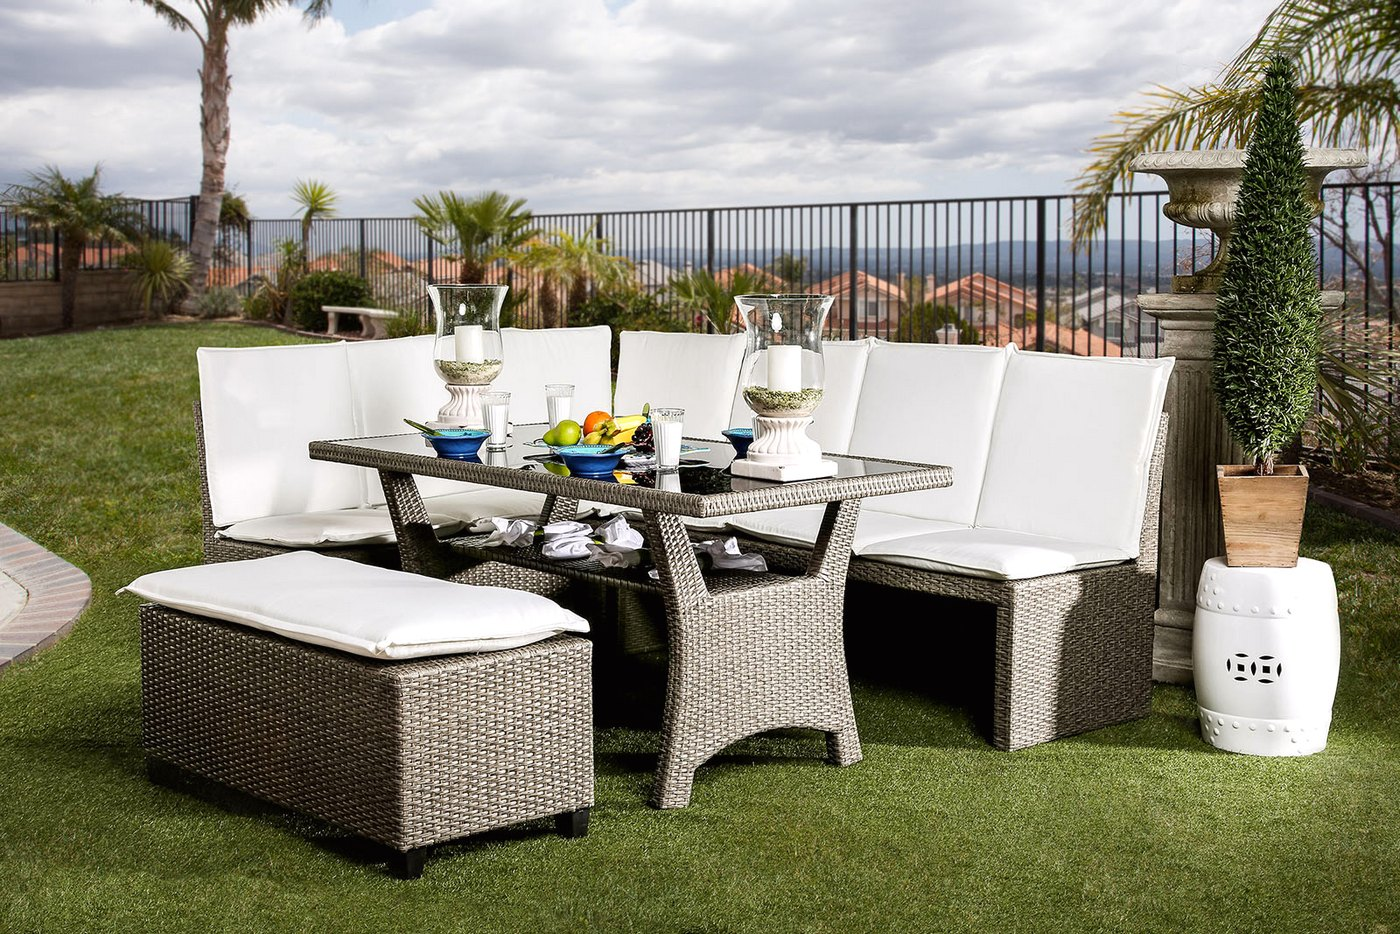 Sectional Dining Set : Naples casual outdoor patio sectional dining set in white